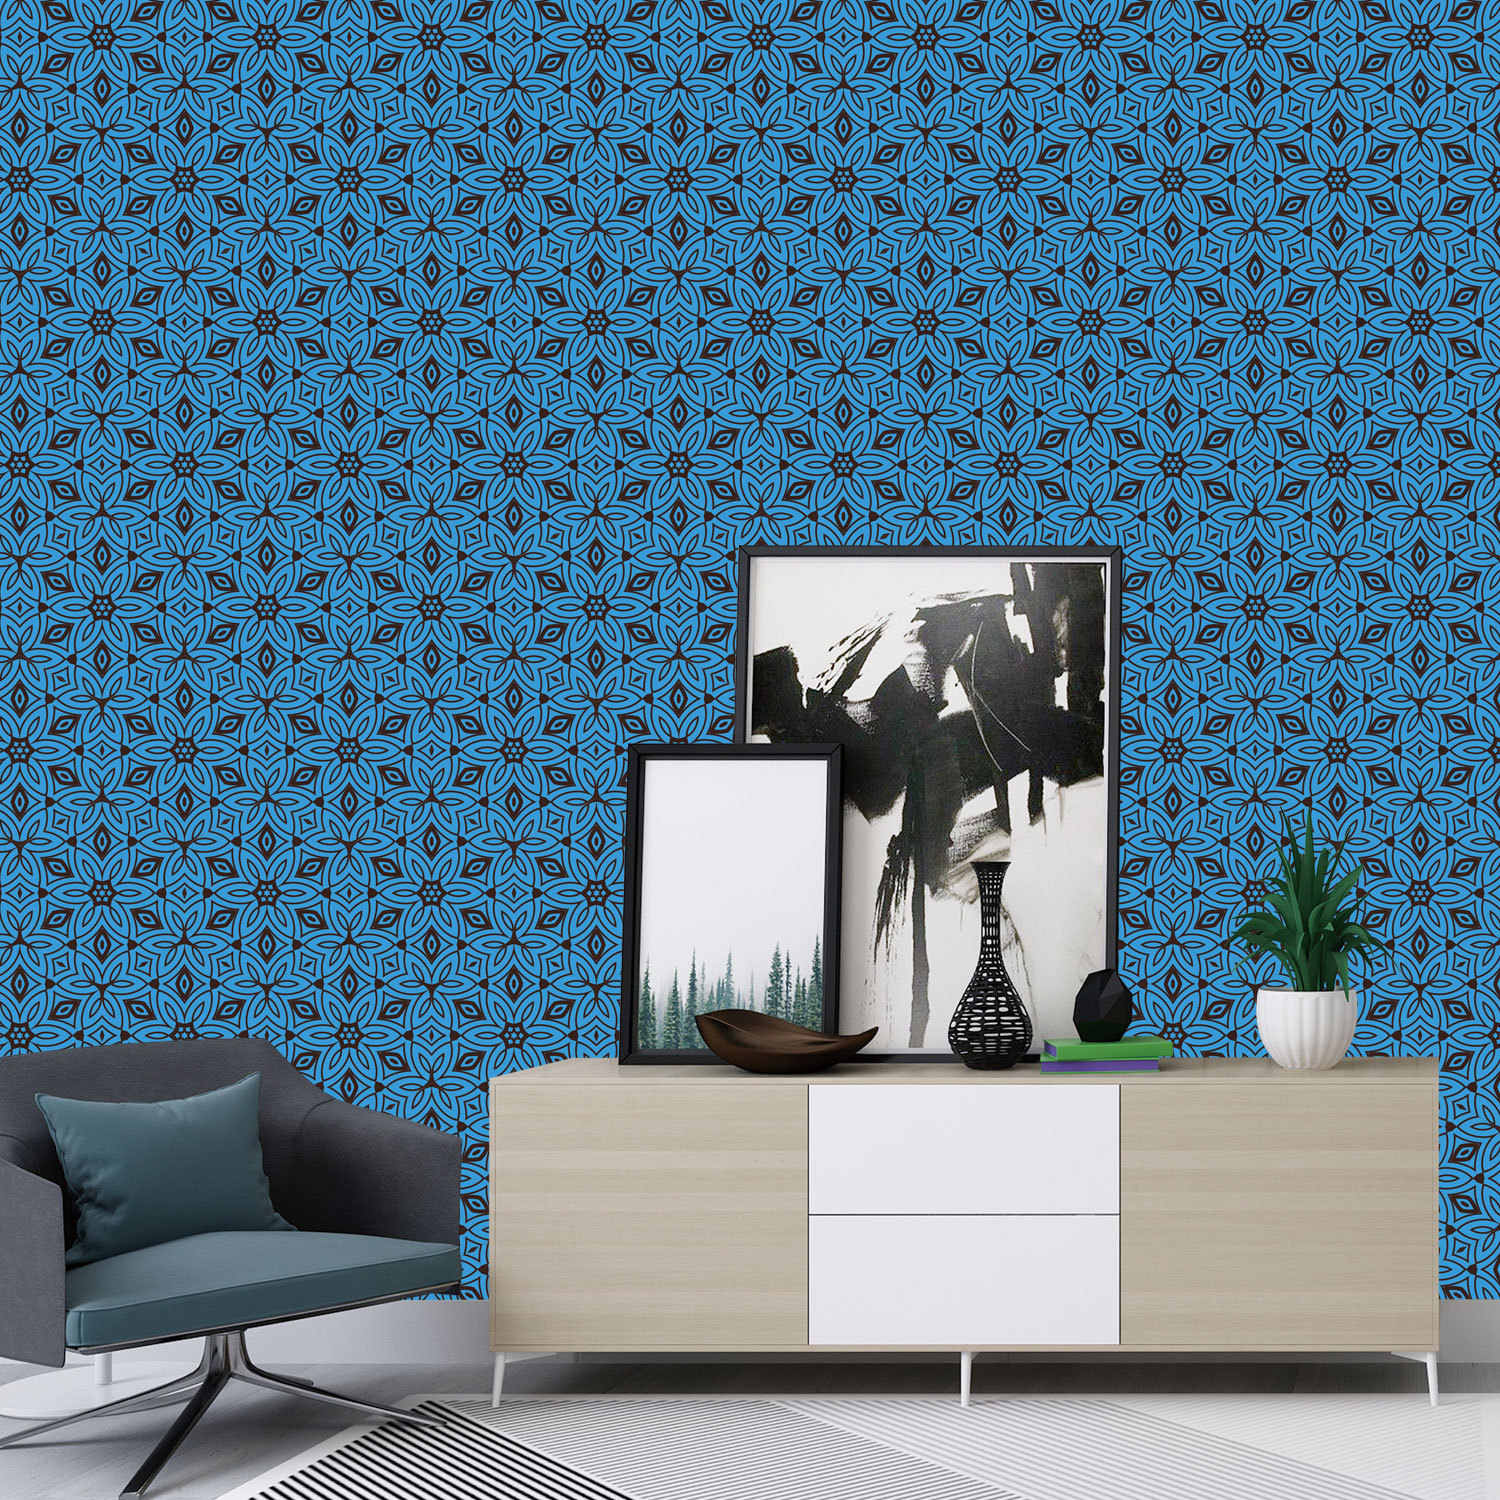 Moroccan Style Blue 6 Sided Pattern Tile Stickers Bathroom Kitchen Living Room Bedroom Tv Sofa Wall Decoration Wall Stickers